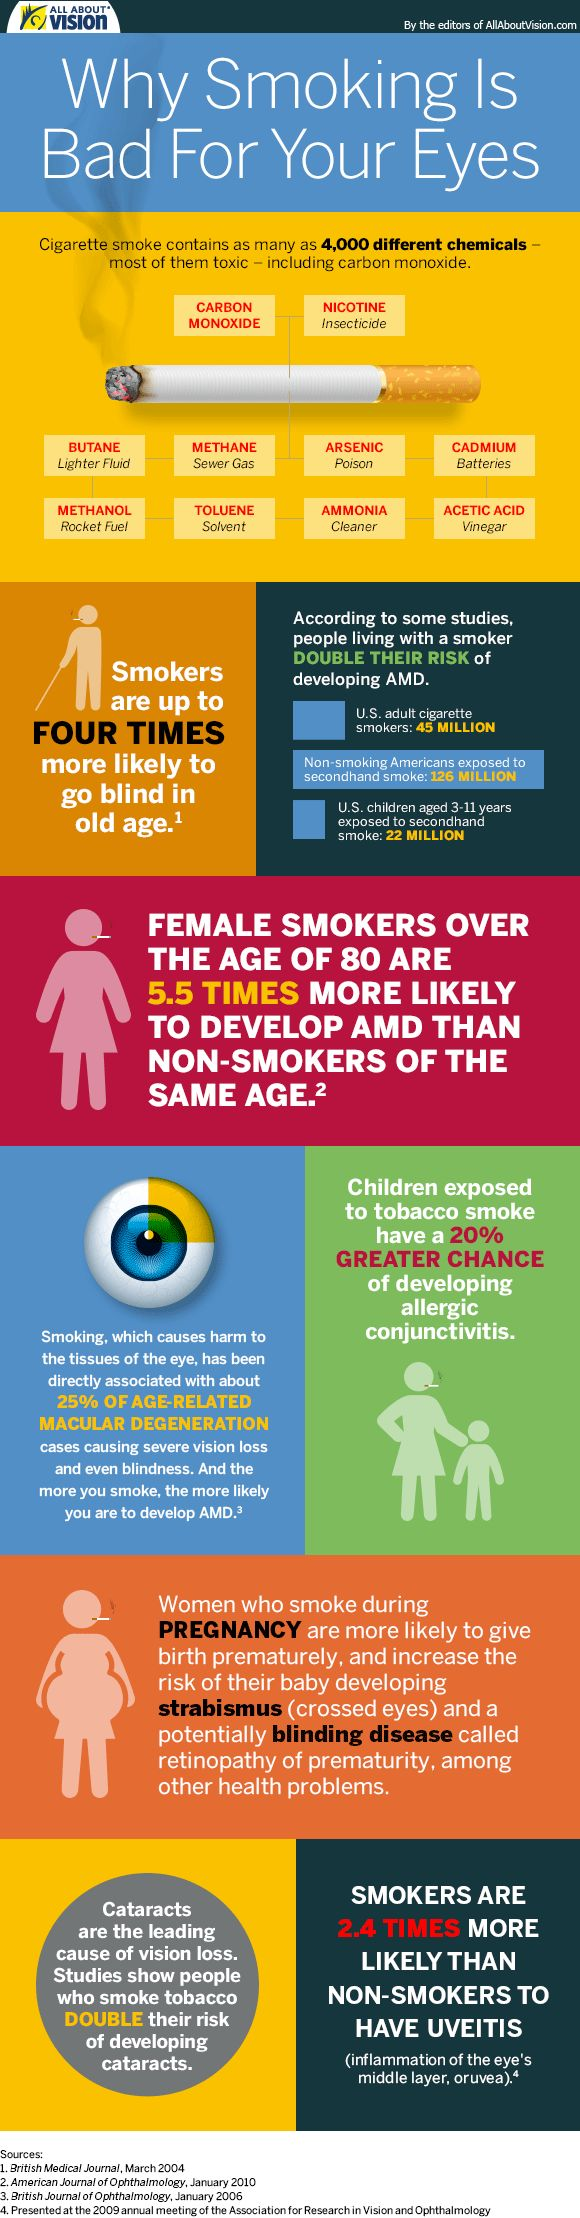 Sight-Threatening Vision from Smoking & Other Eye Problems are generally are less well-known compared to heart disease and cancer, when in reality smoking is the single, largest preventable cause of disease and premature death in the United States. It harms nearly every organ in your body.